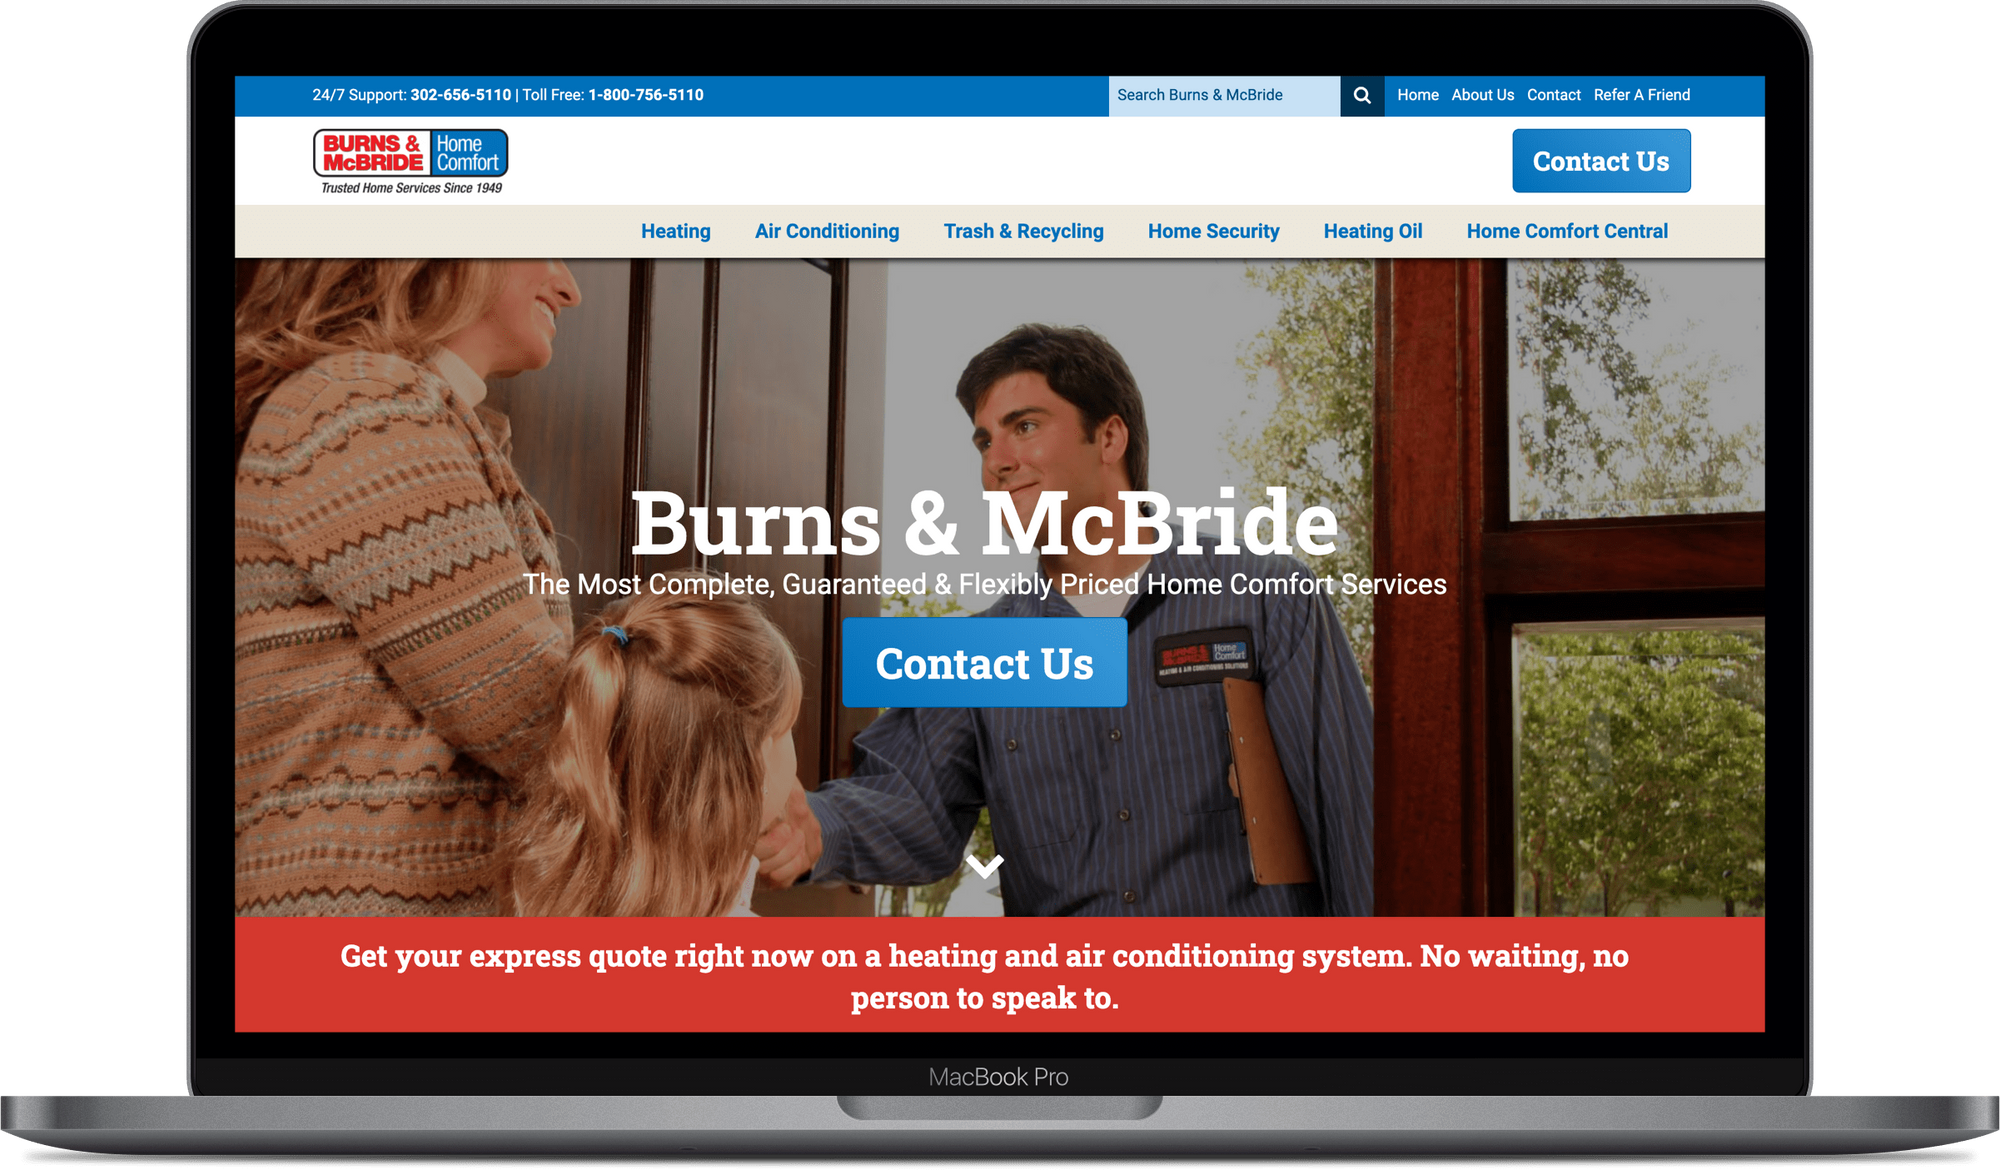 Burns & McBride Featured Image